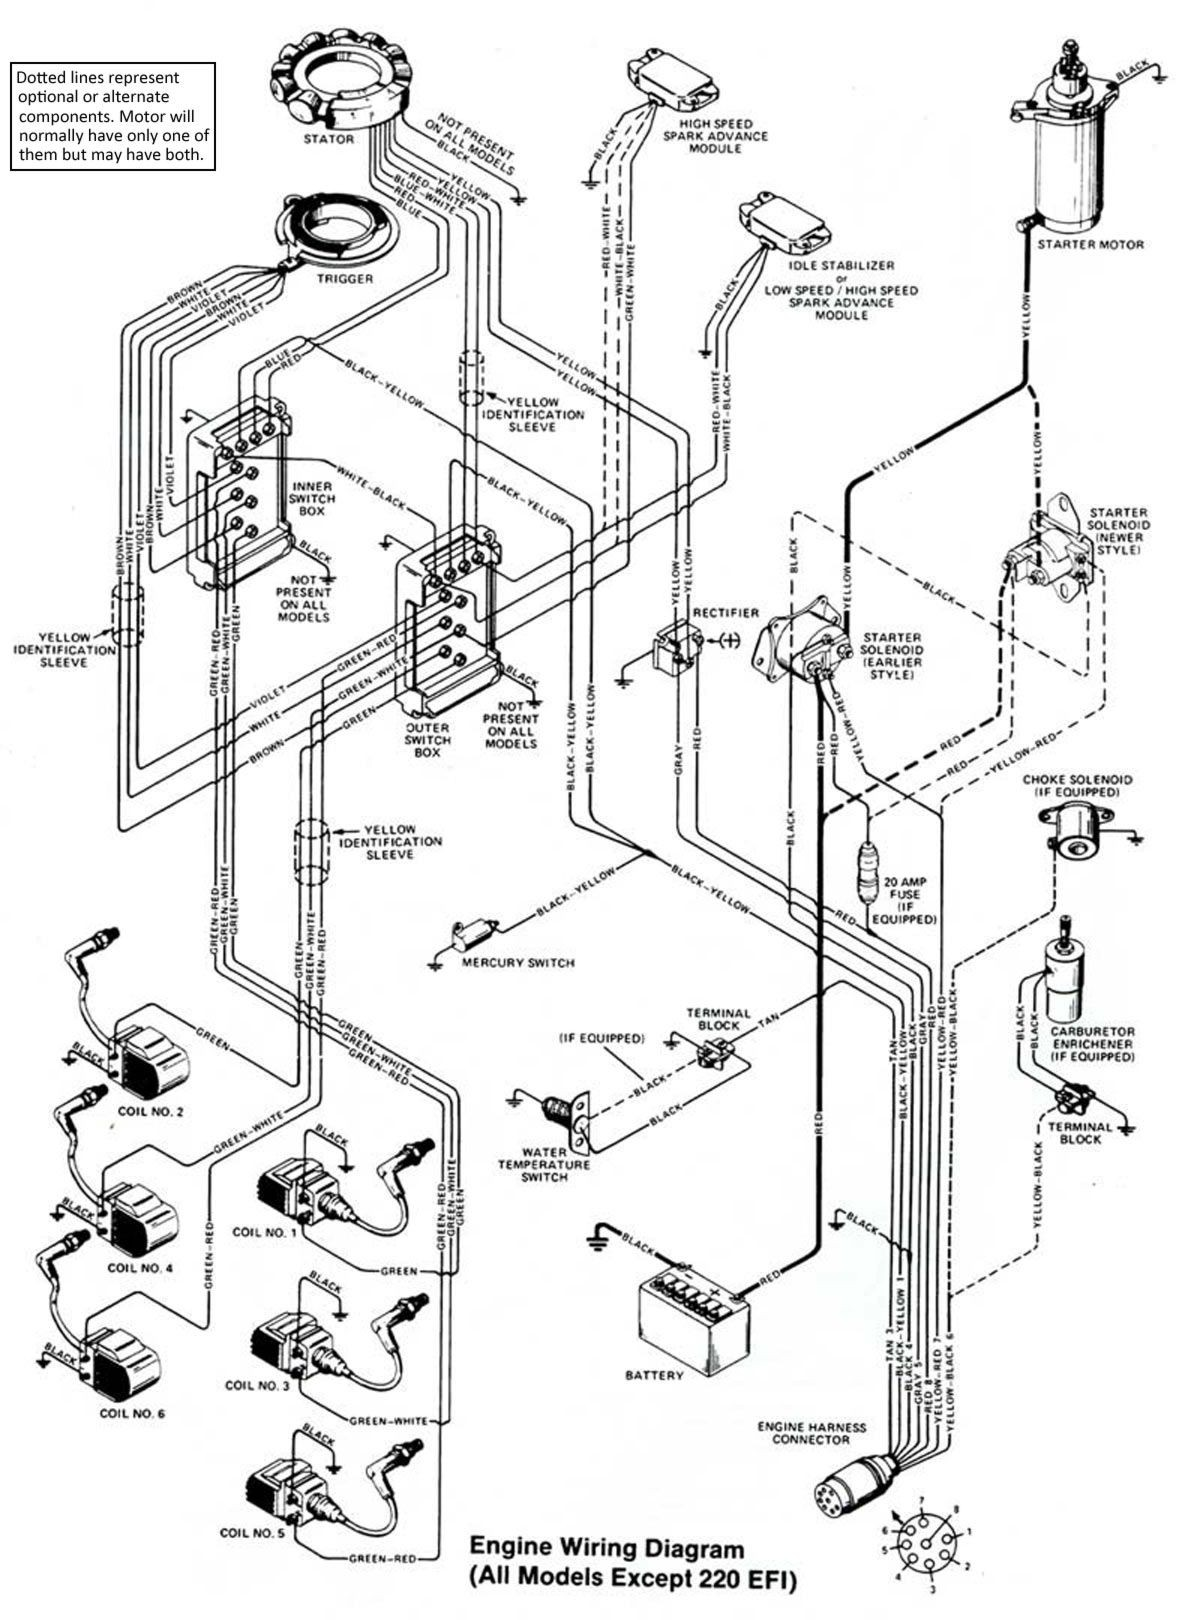 Engine Components Diagram Porsche 944 Oil Flow Mercury 135 Blackmax Tach Sig Page 1 Iboats Boating Forums Of